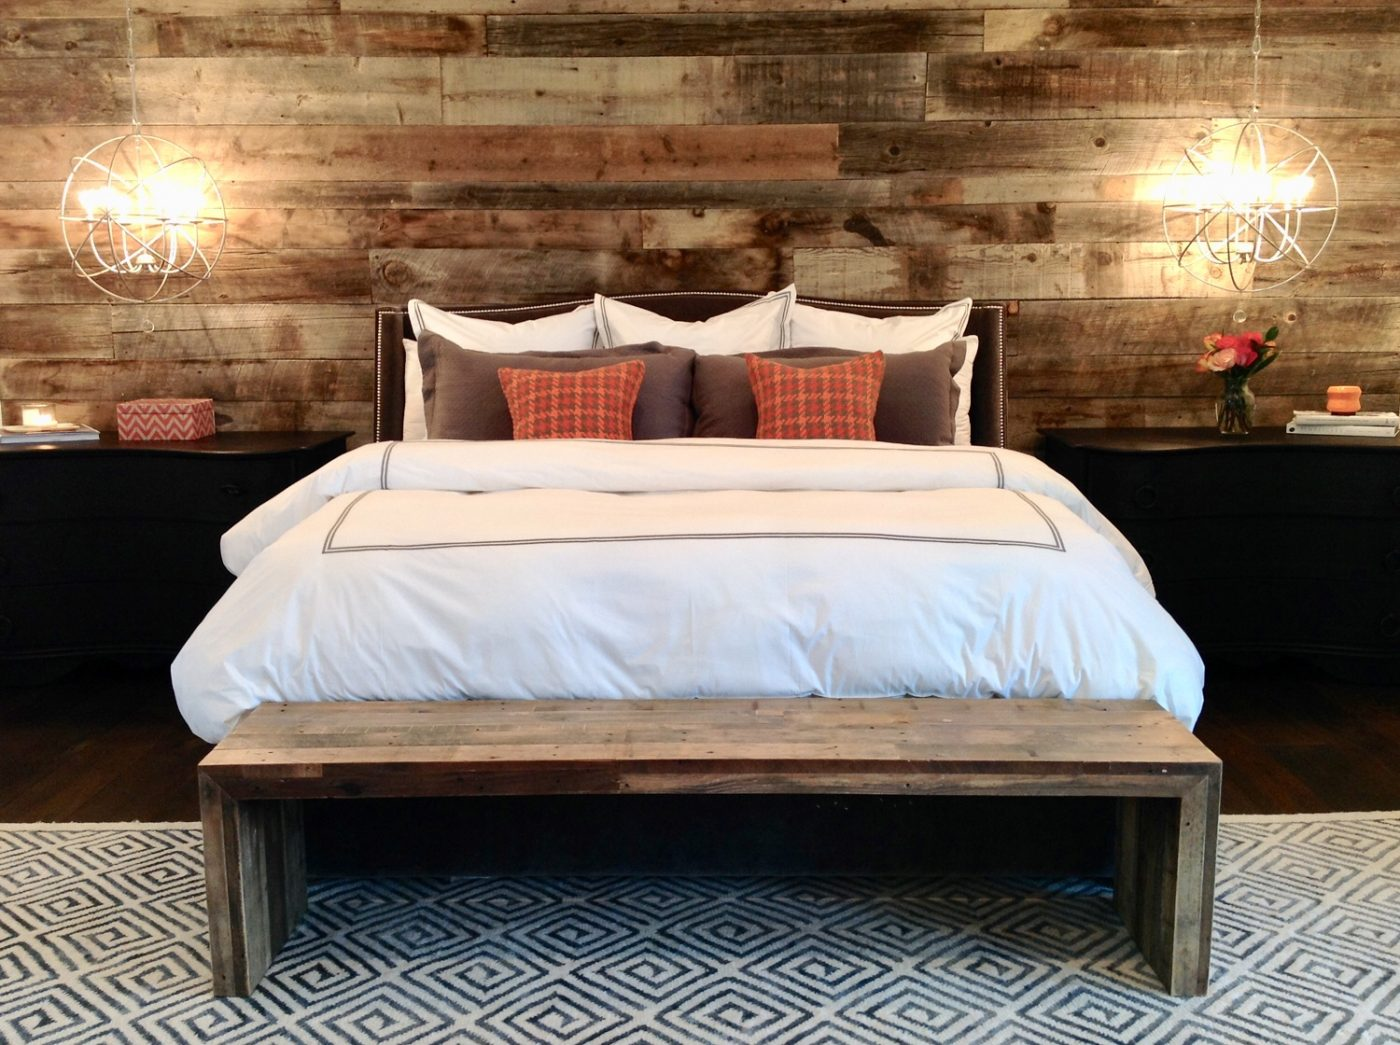 Comfy Cozy Bed! 100 Year Old Barn Wood Wall & Bedside Pendant Lights. I wonder if there is 24 hour room service?